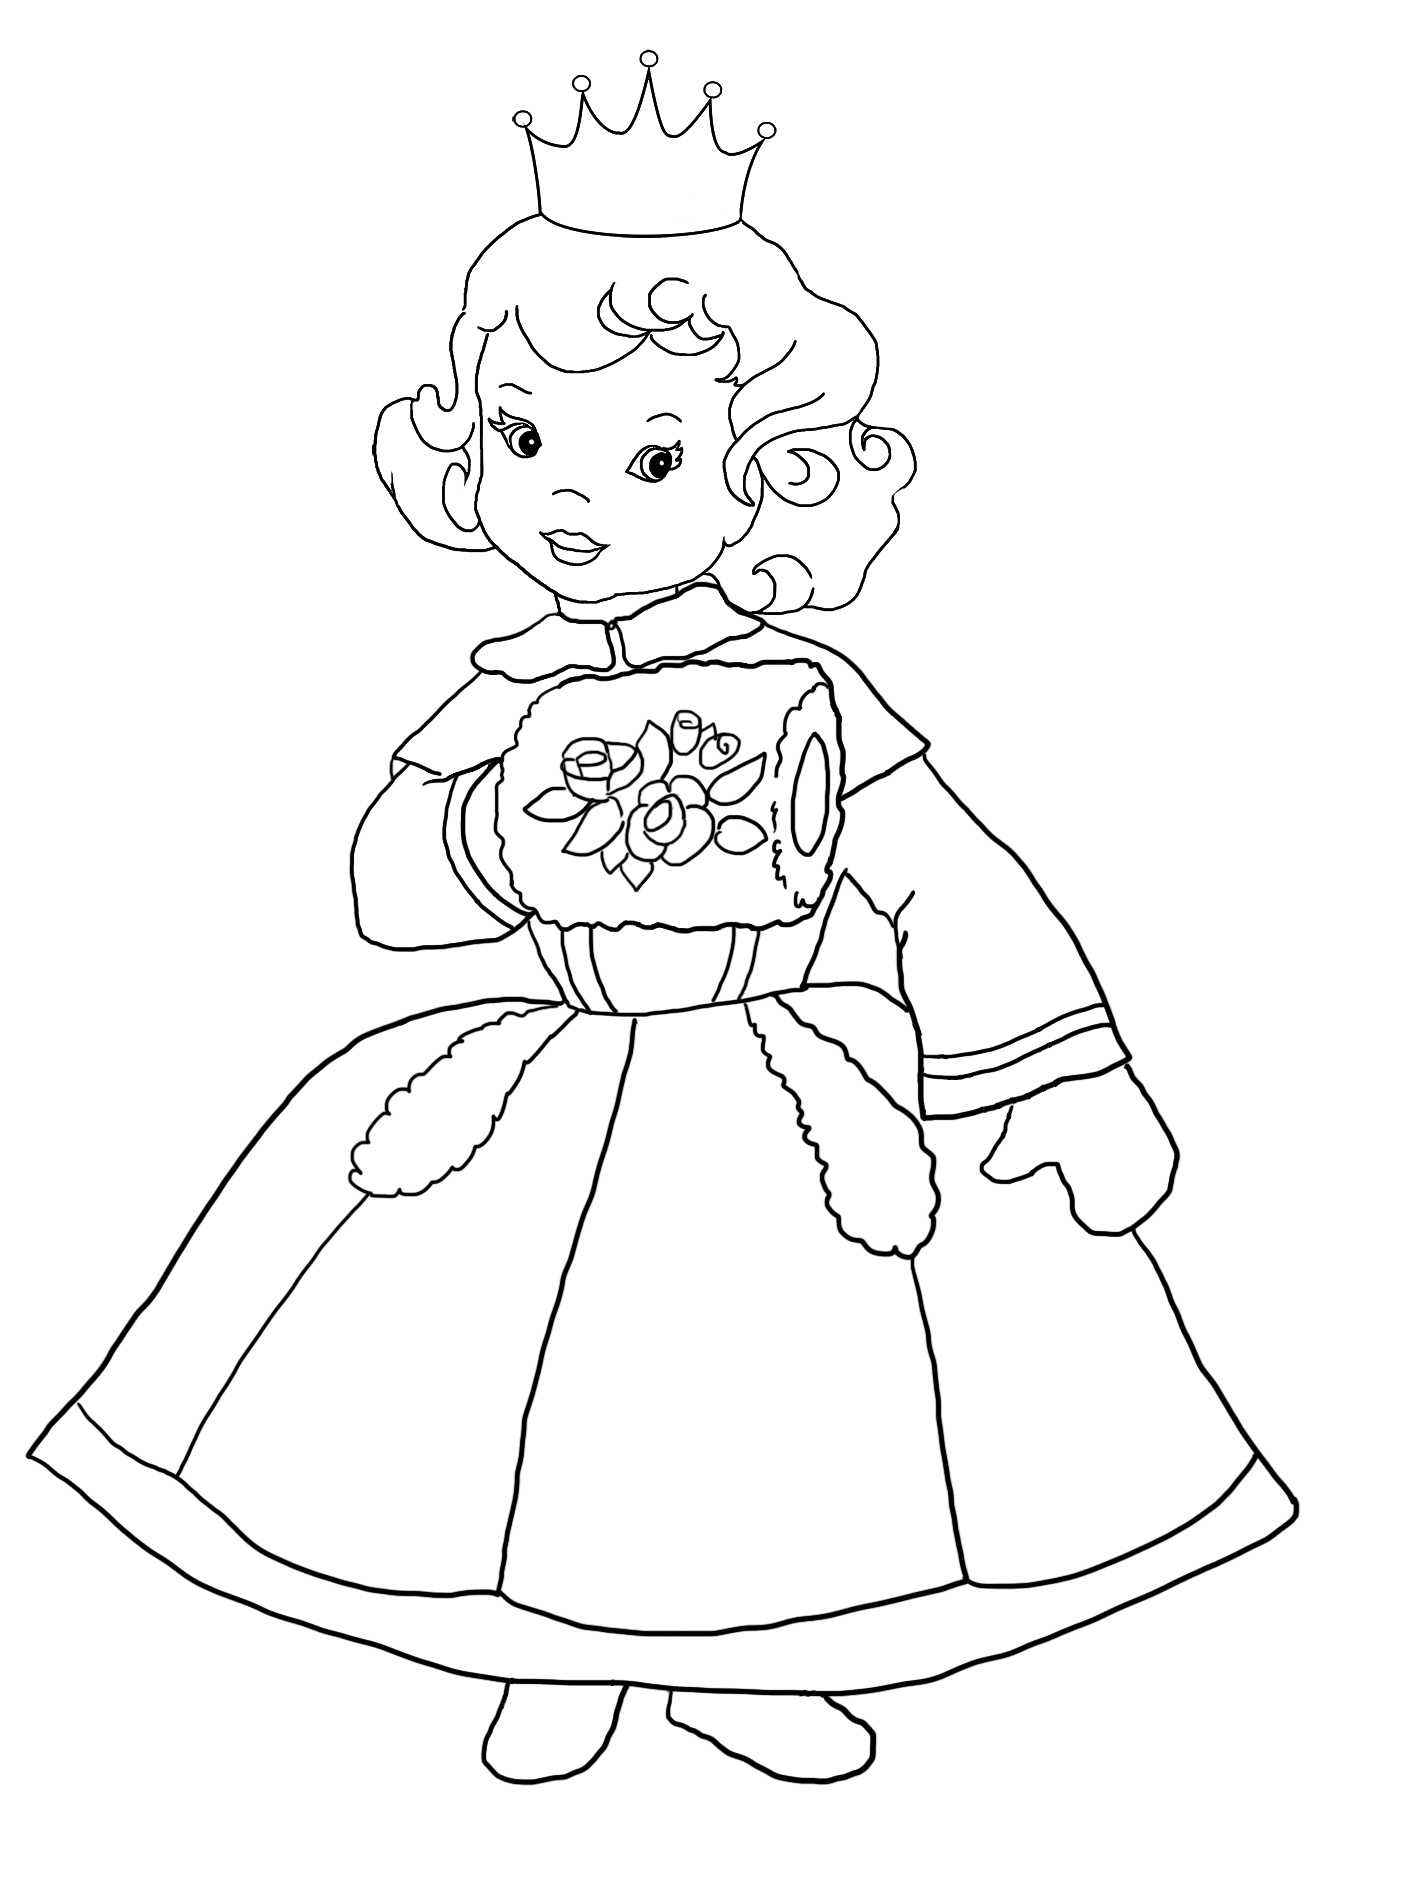 coloring sheet of princess in winter dress